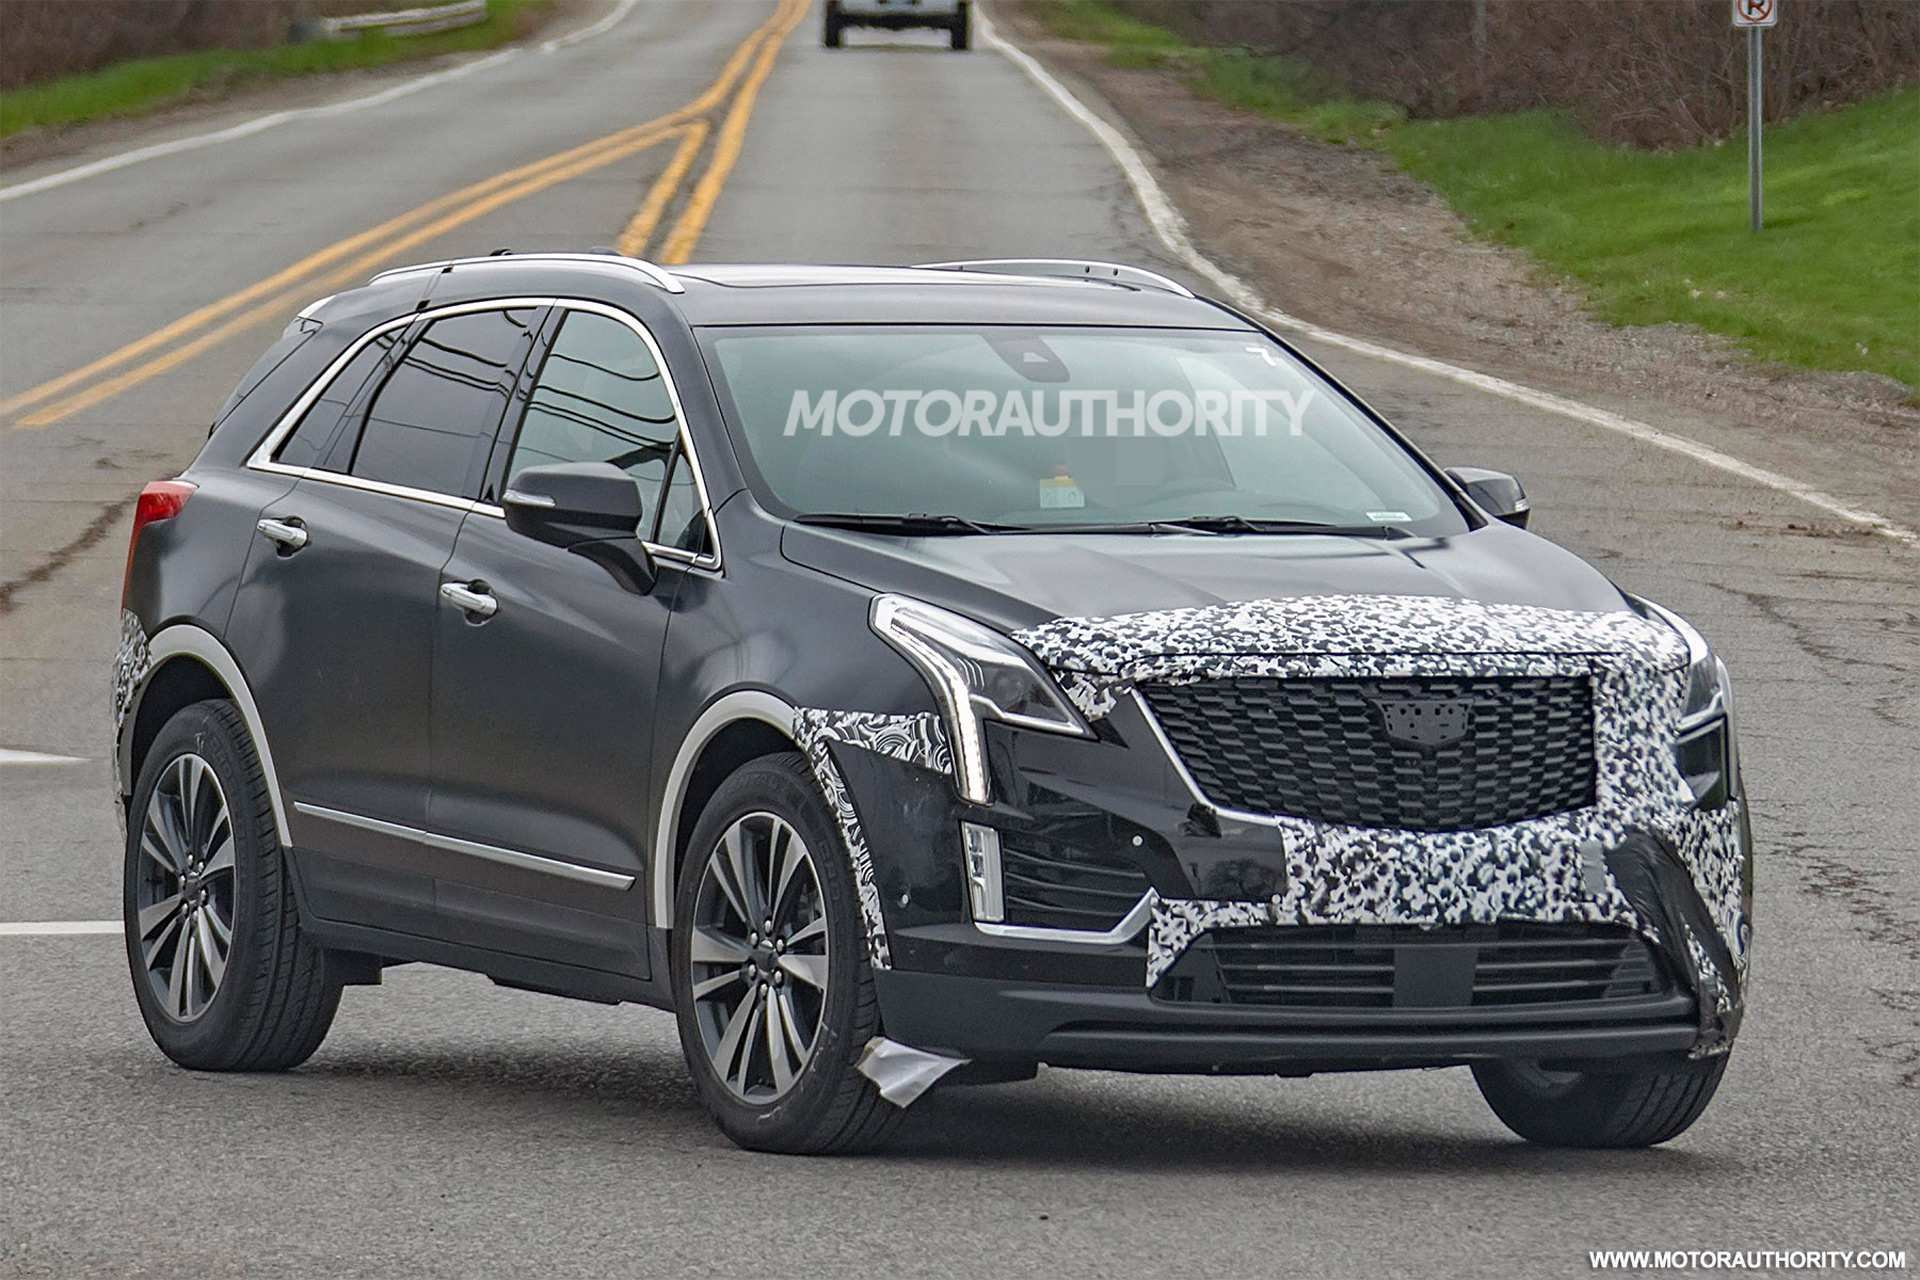 77 The Best 2020 Cadillac Xt5 Review Style